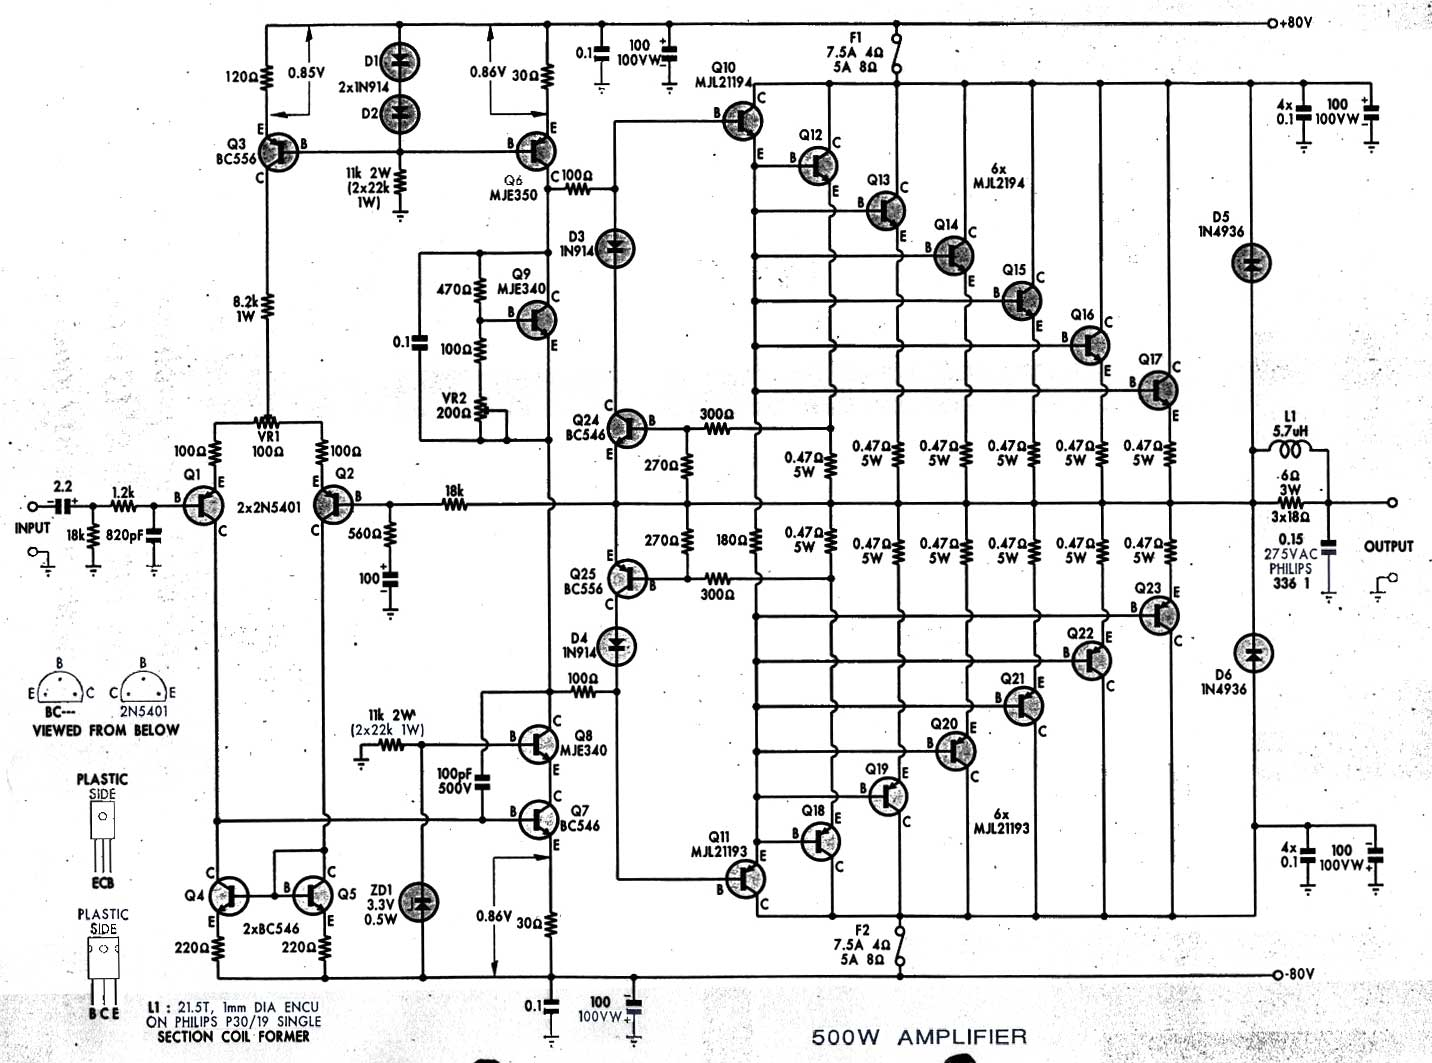 500 Watt Amplifier Circuit Pdf Download Wiring Diagrams Diagram Ups 500w File Mjl21193 21194 Wikimedia Commons Hf Watts